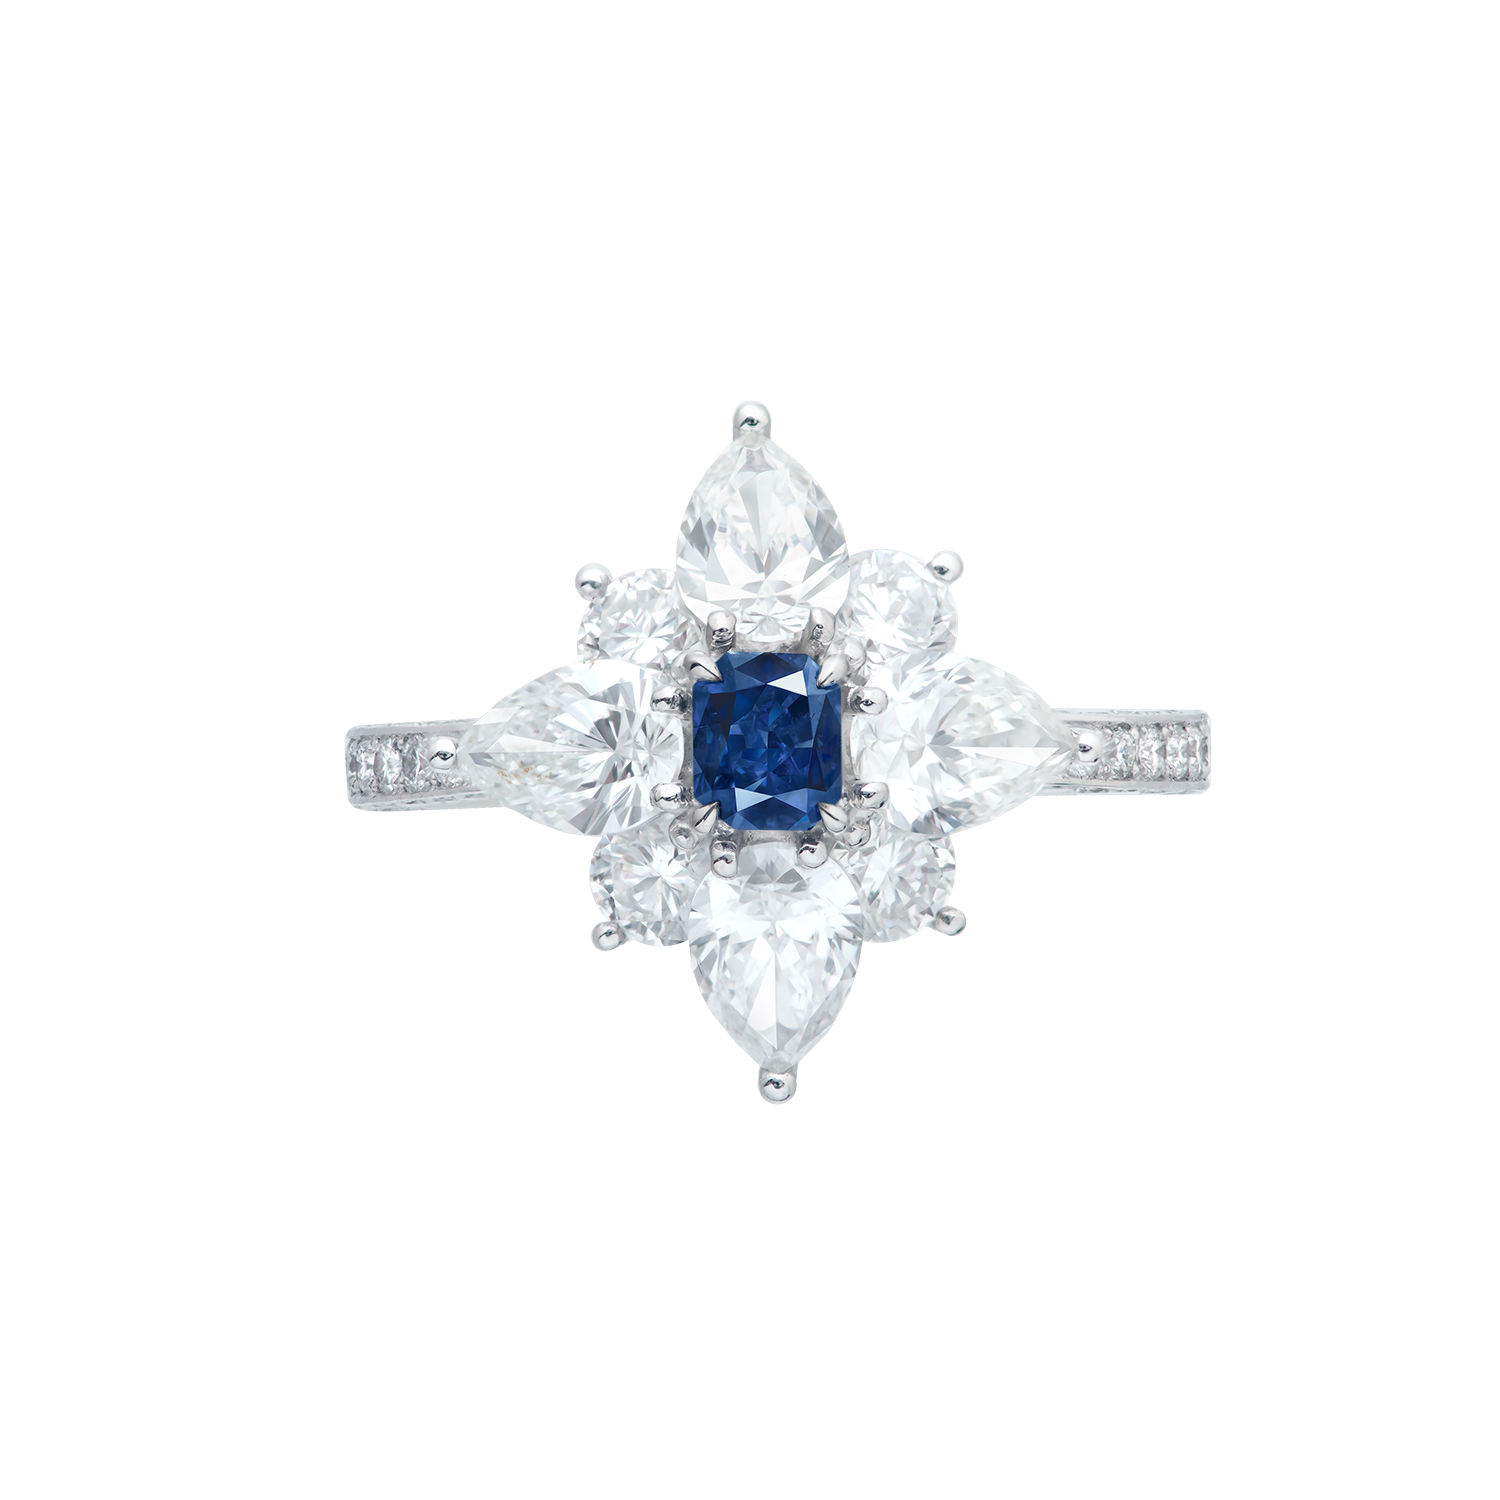 GIA 0.23克拉 暗彩灰藍鑽鑽戒